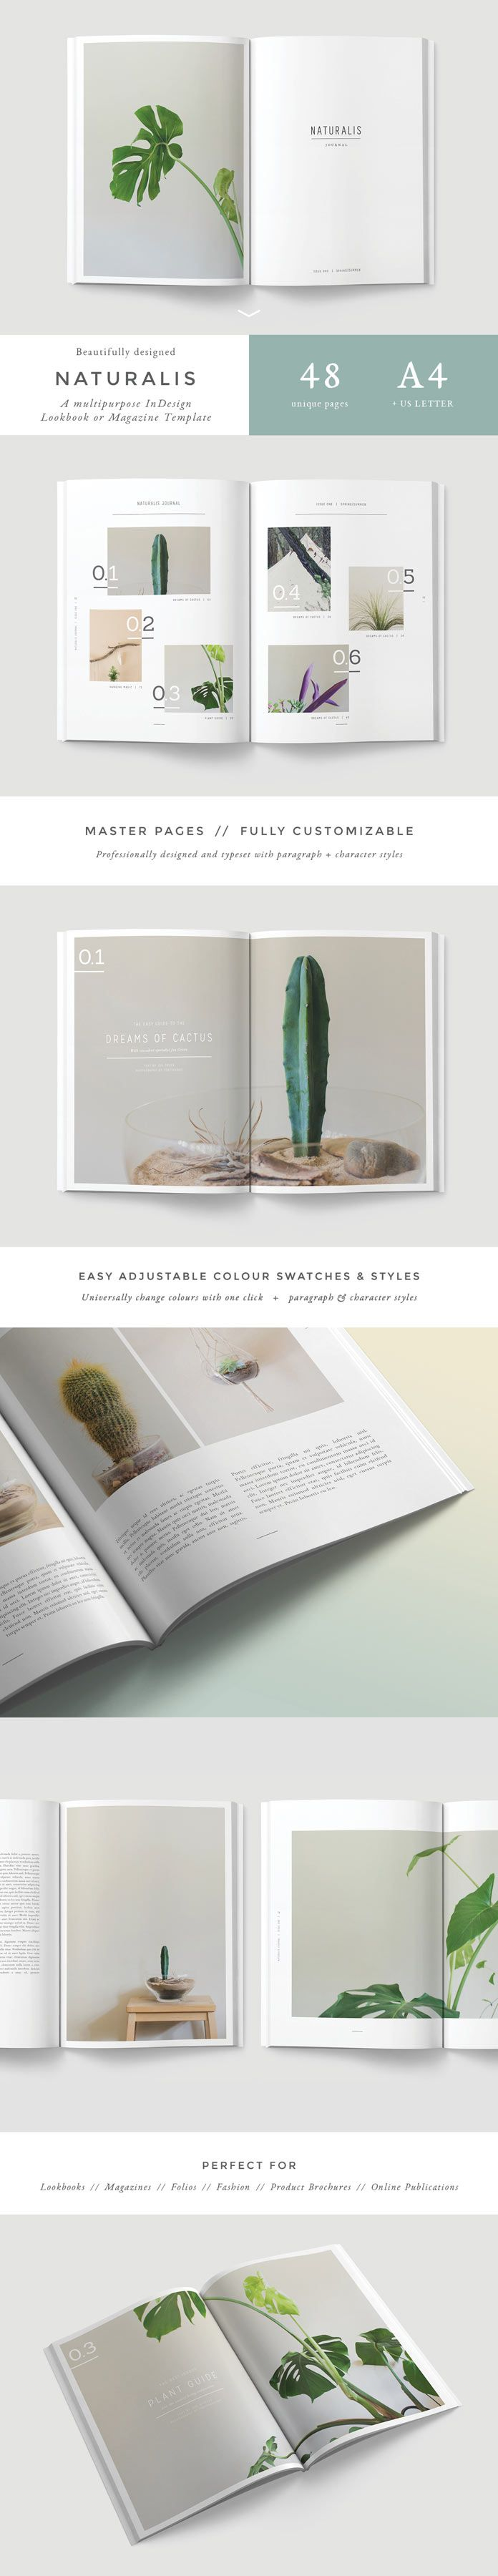 blurb indesign template - best 25 adobe indesign ideas on pinterest graphic